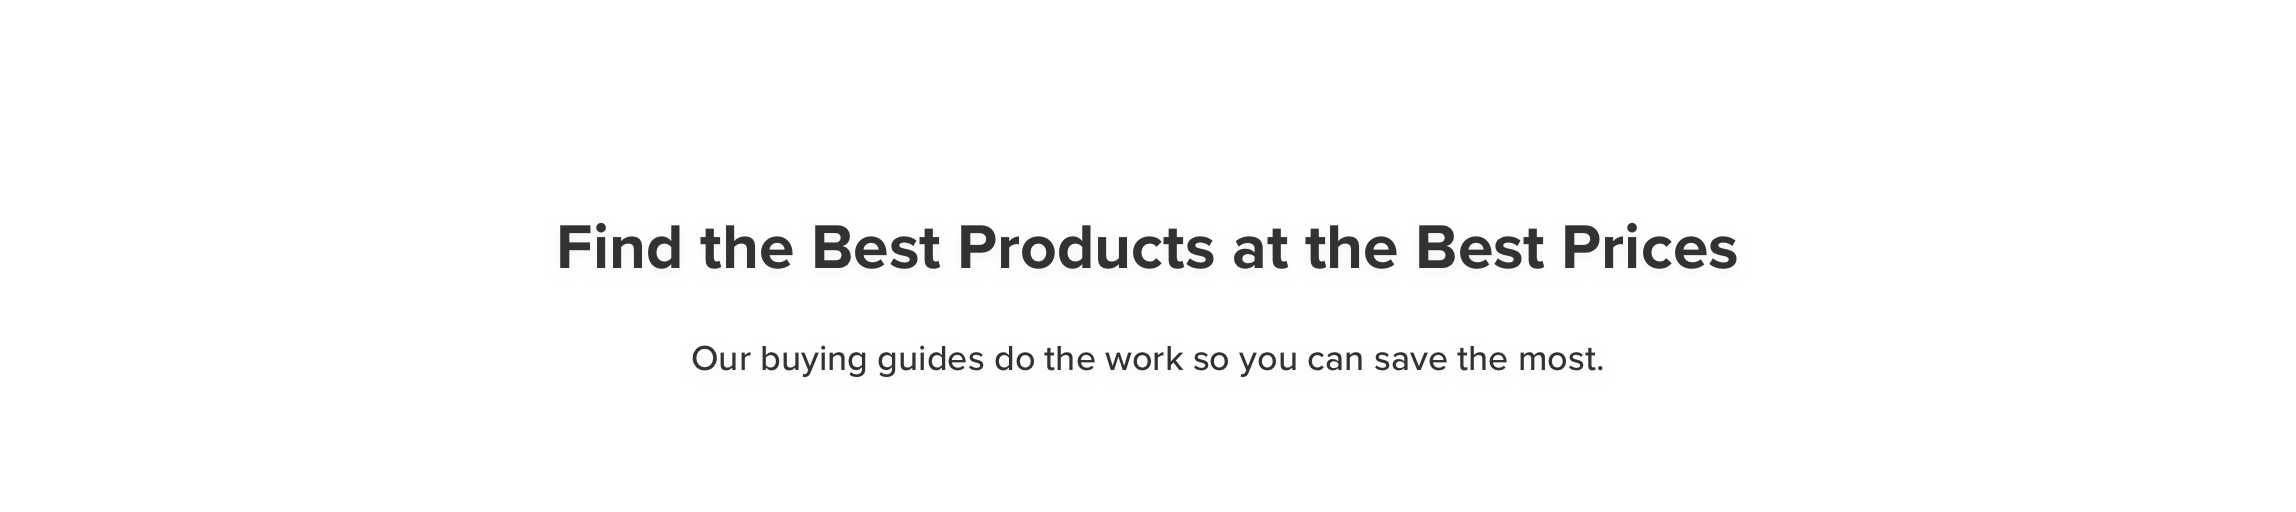 Find the Best Products at the Best Prices Our buying guides do the work so you can save the most.